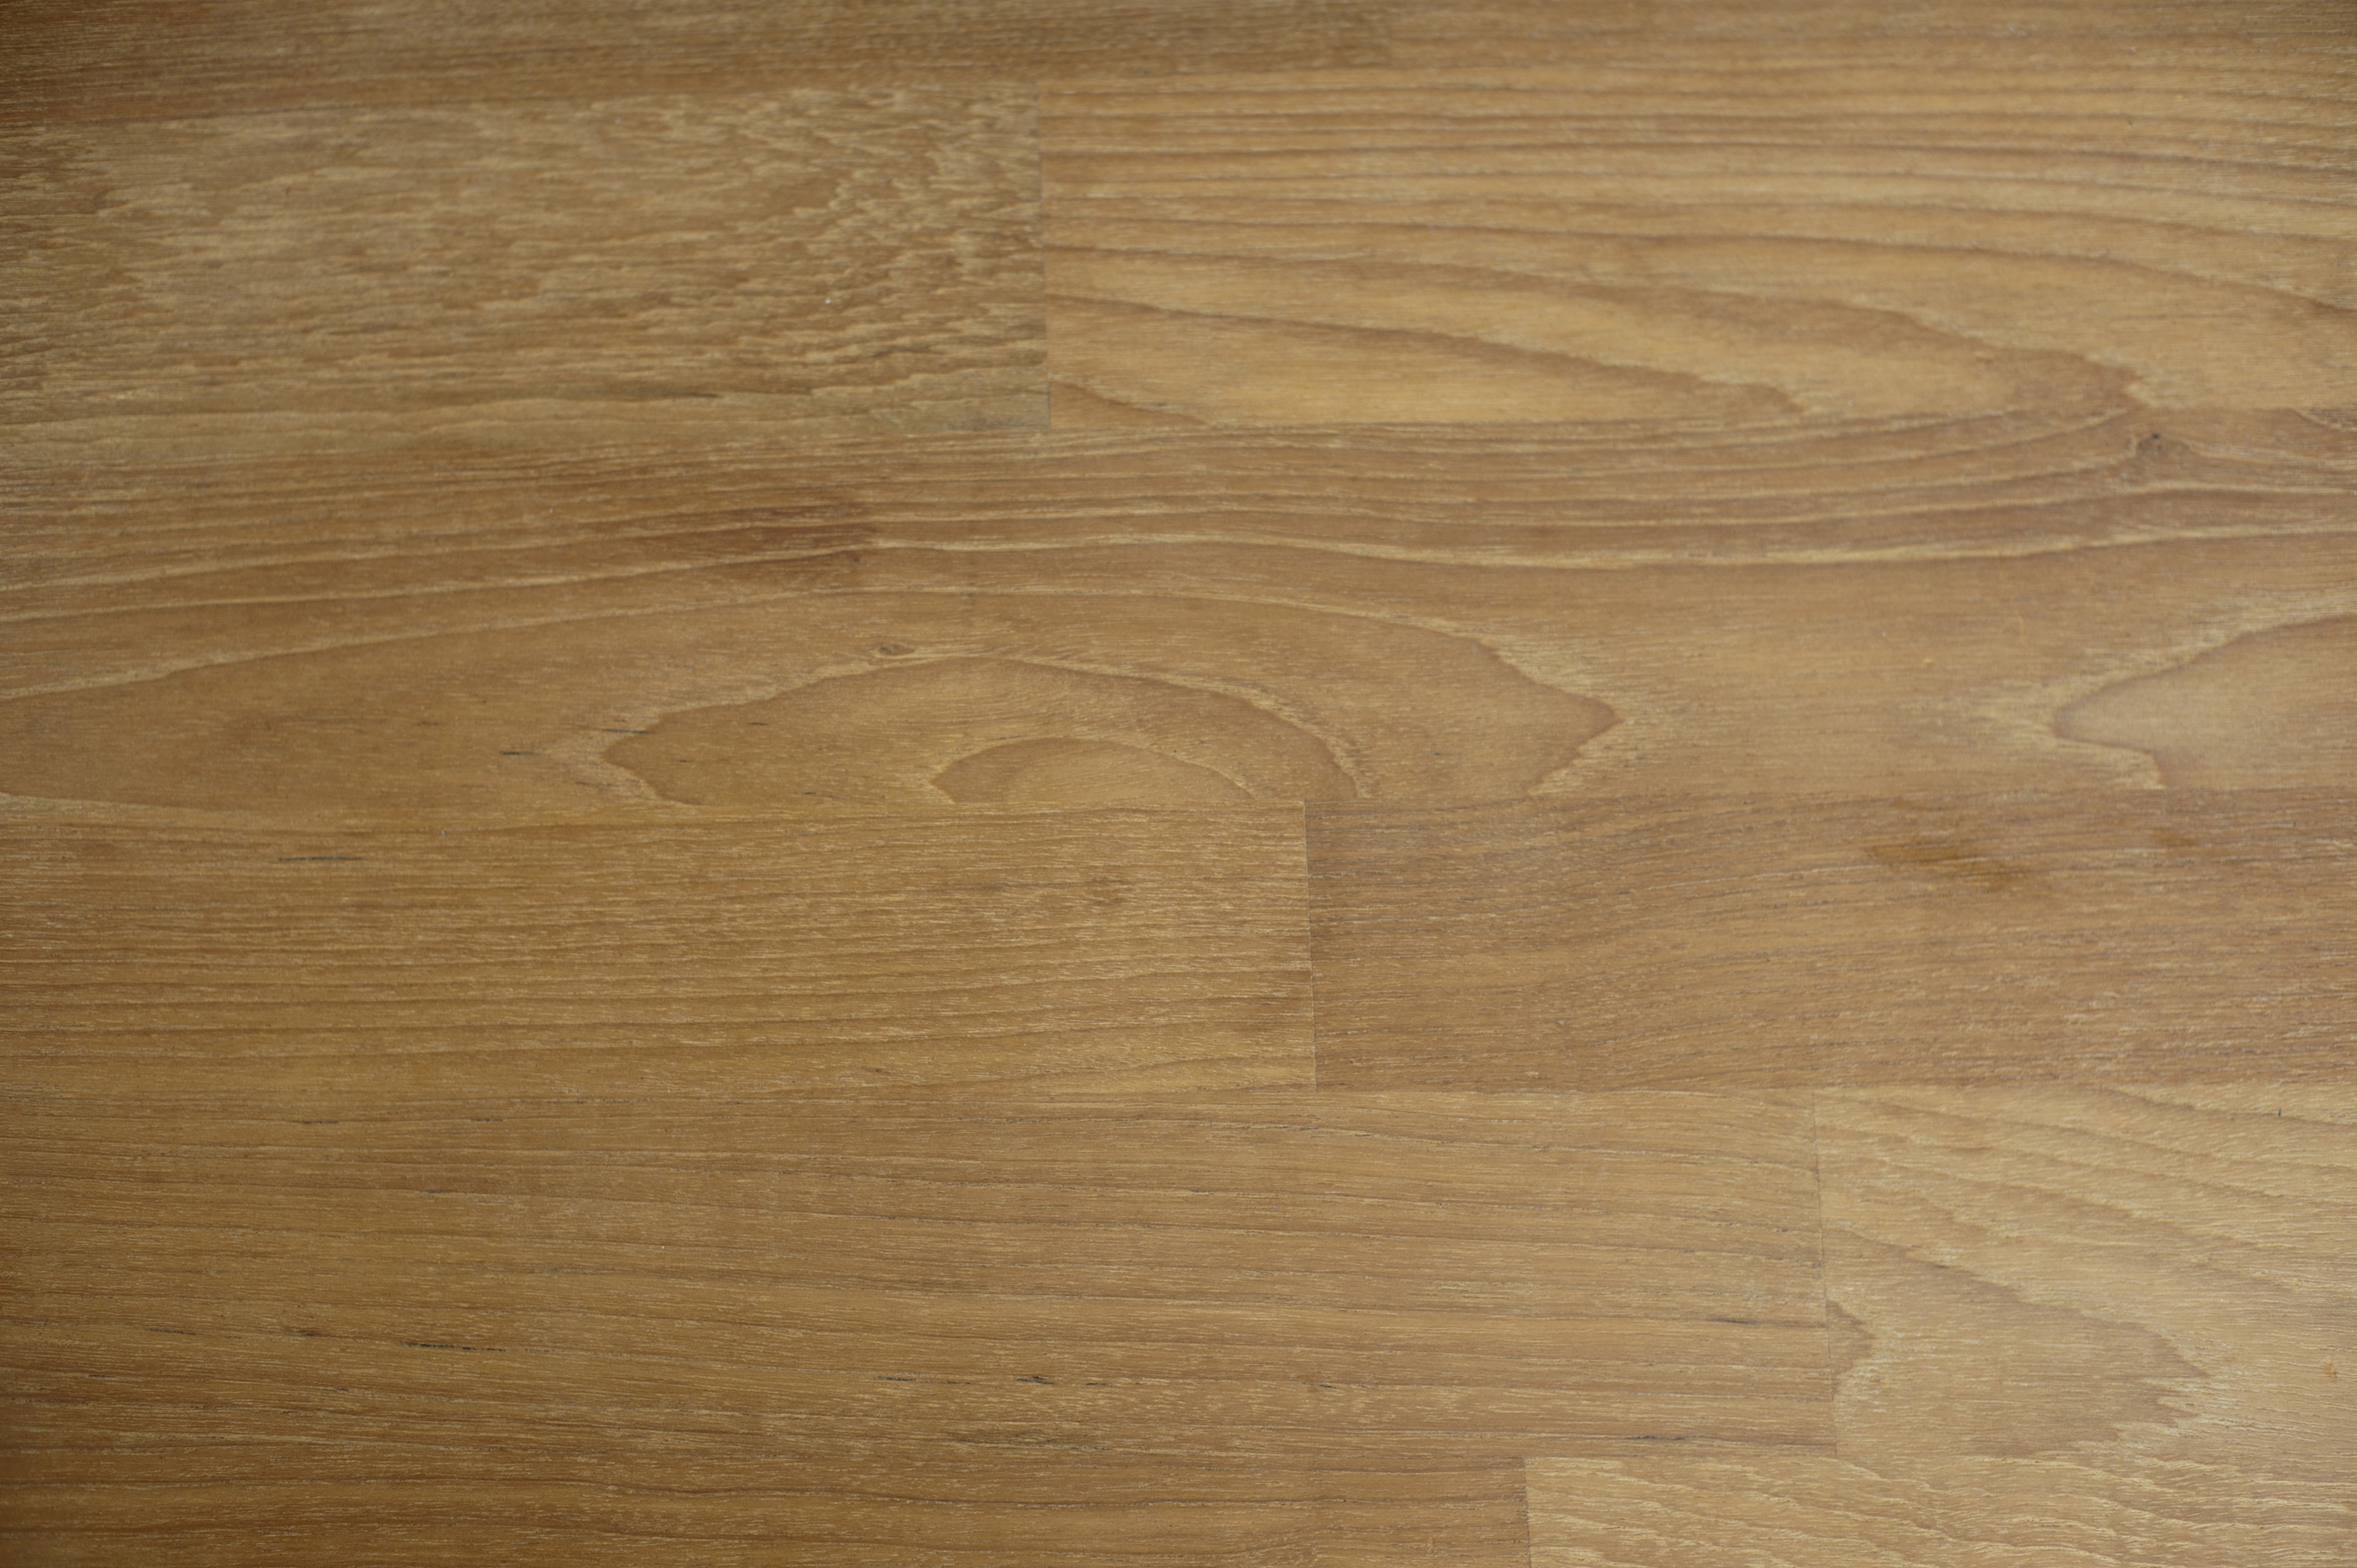 Brown parquet flooring made of horizontal rows of laminate wooden battens, close up